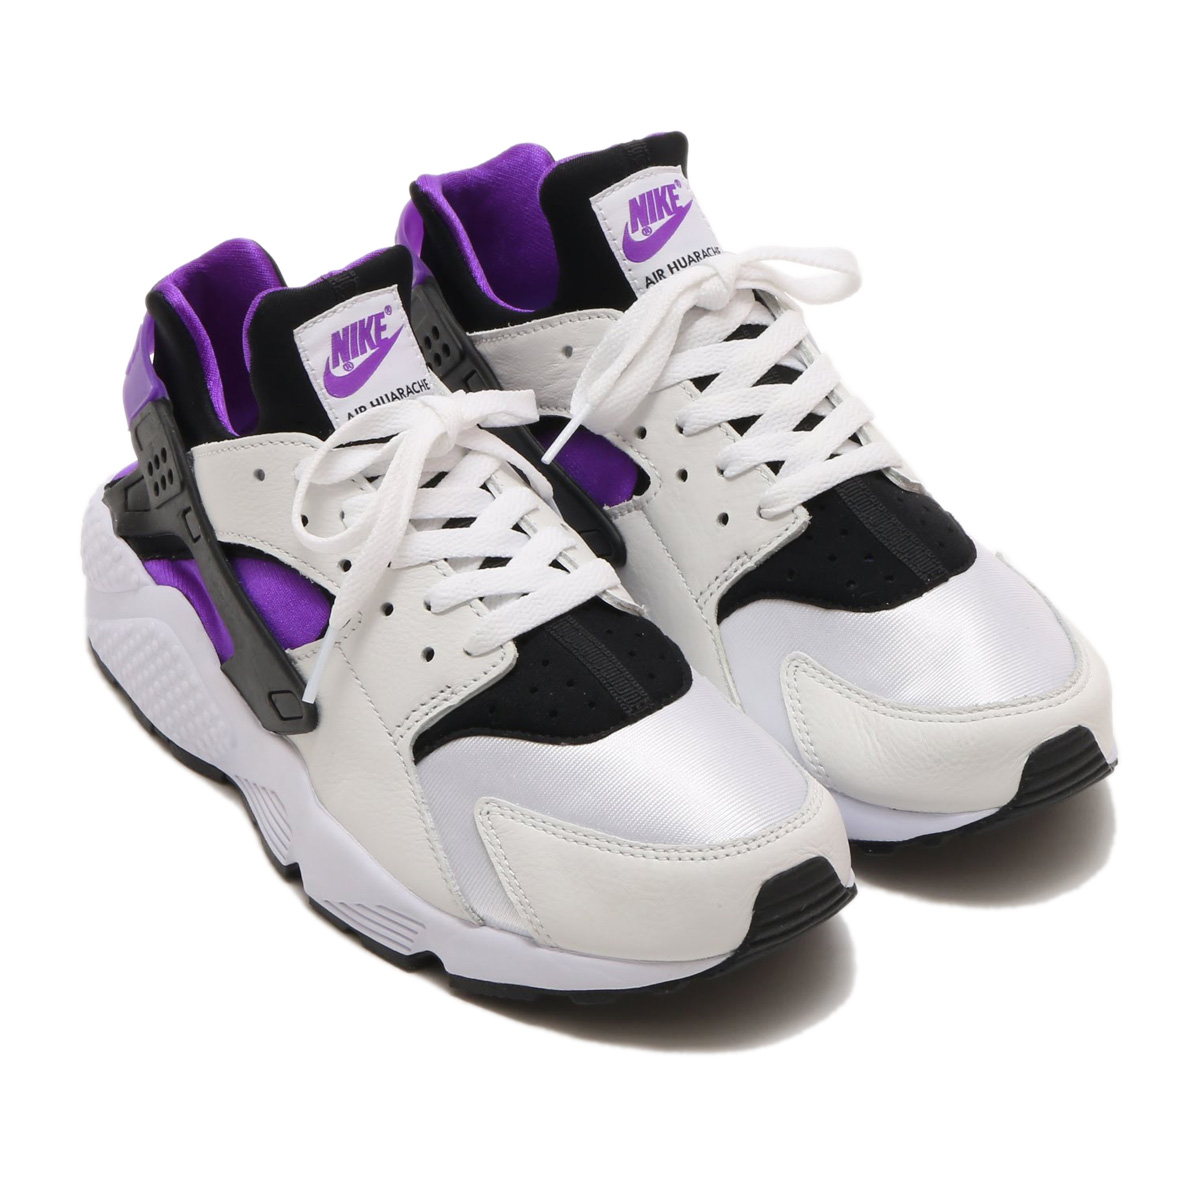 brand new 0079d 7fbc8 NIKE AIR HUARACHE RUN  91 QS (ナイキエアハラチラン 91 QS) (BLACK PURPLE PUNCH-BLACK- WHITE) 18SP-S